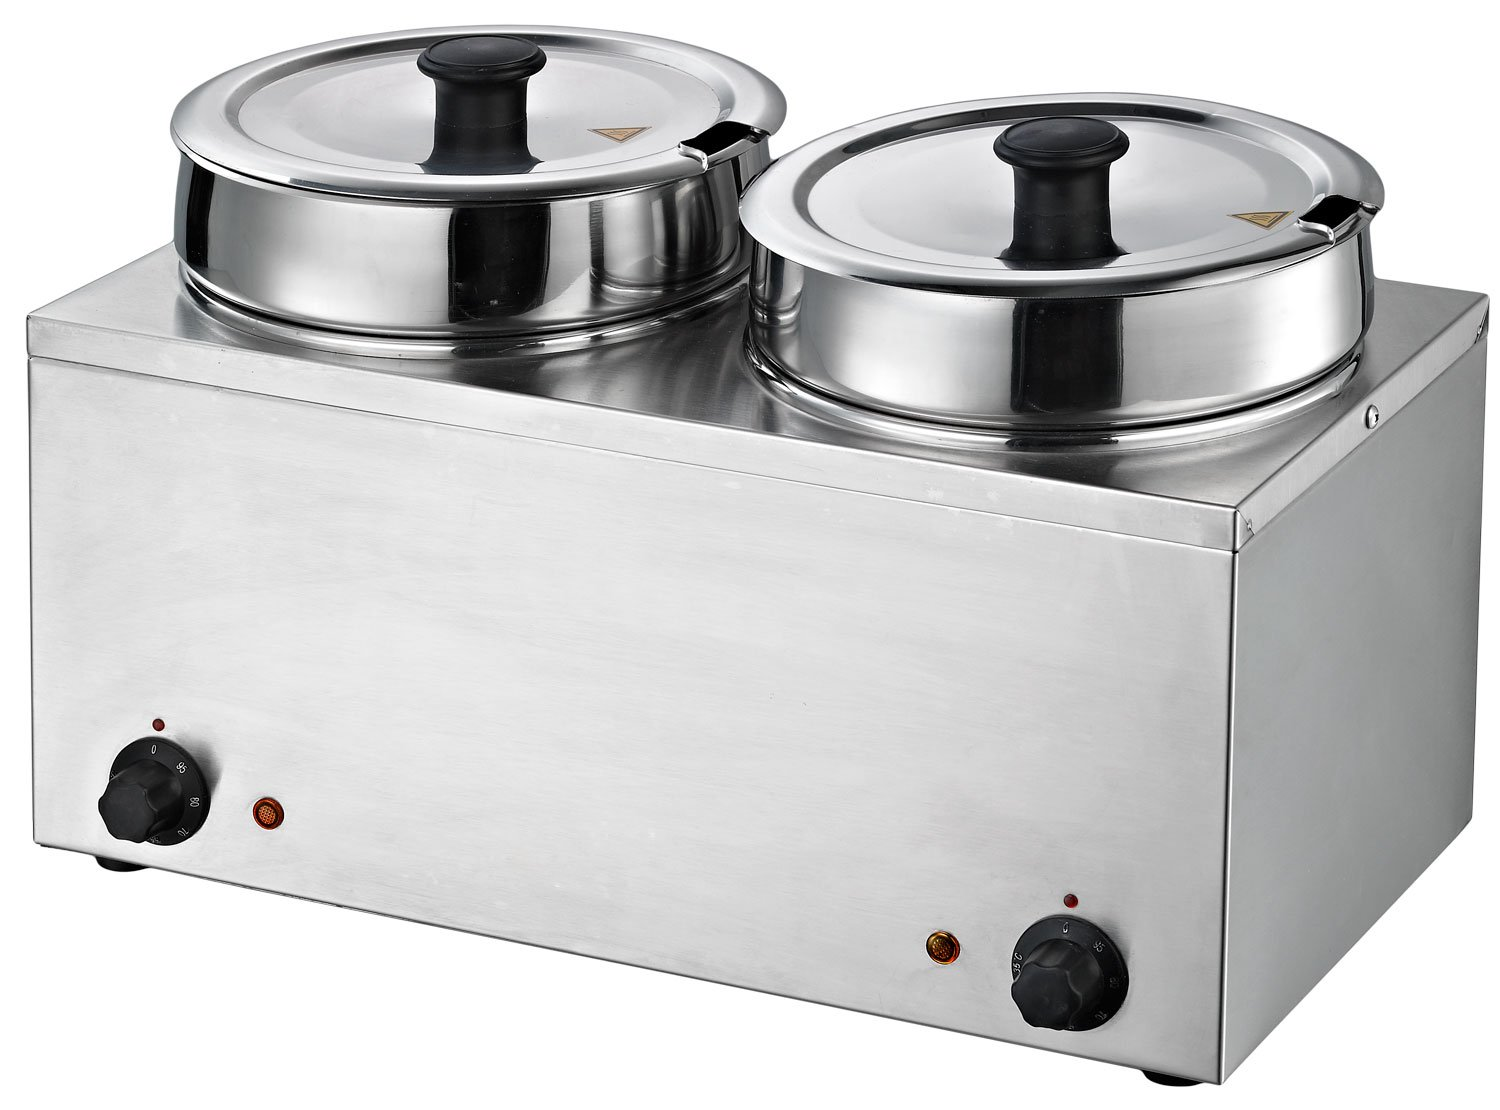 Chef's Supreme - Dual 7 qt. Round Well Stainless Food Warmer w/Inserts and Lids, Each